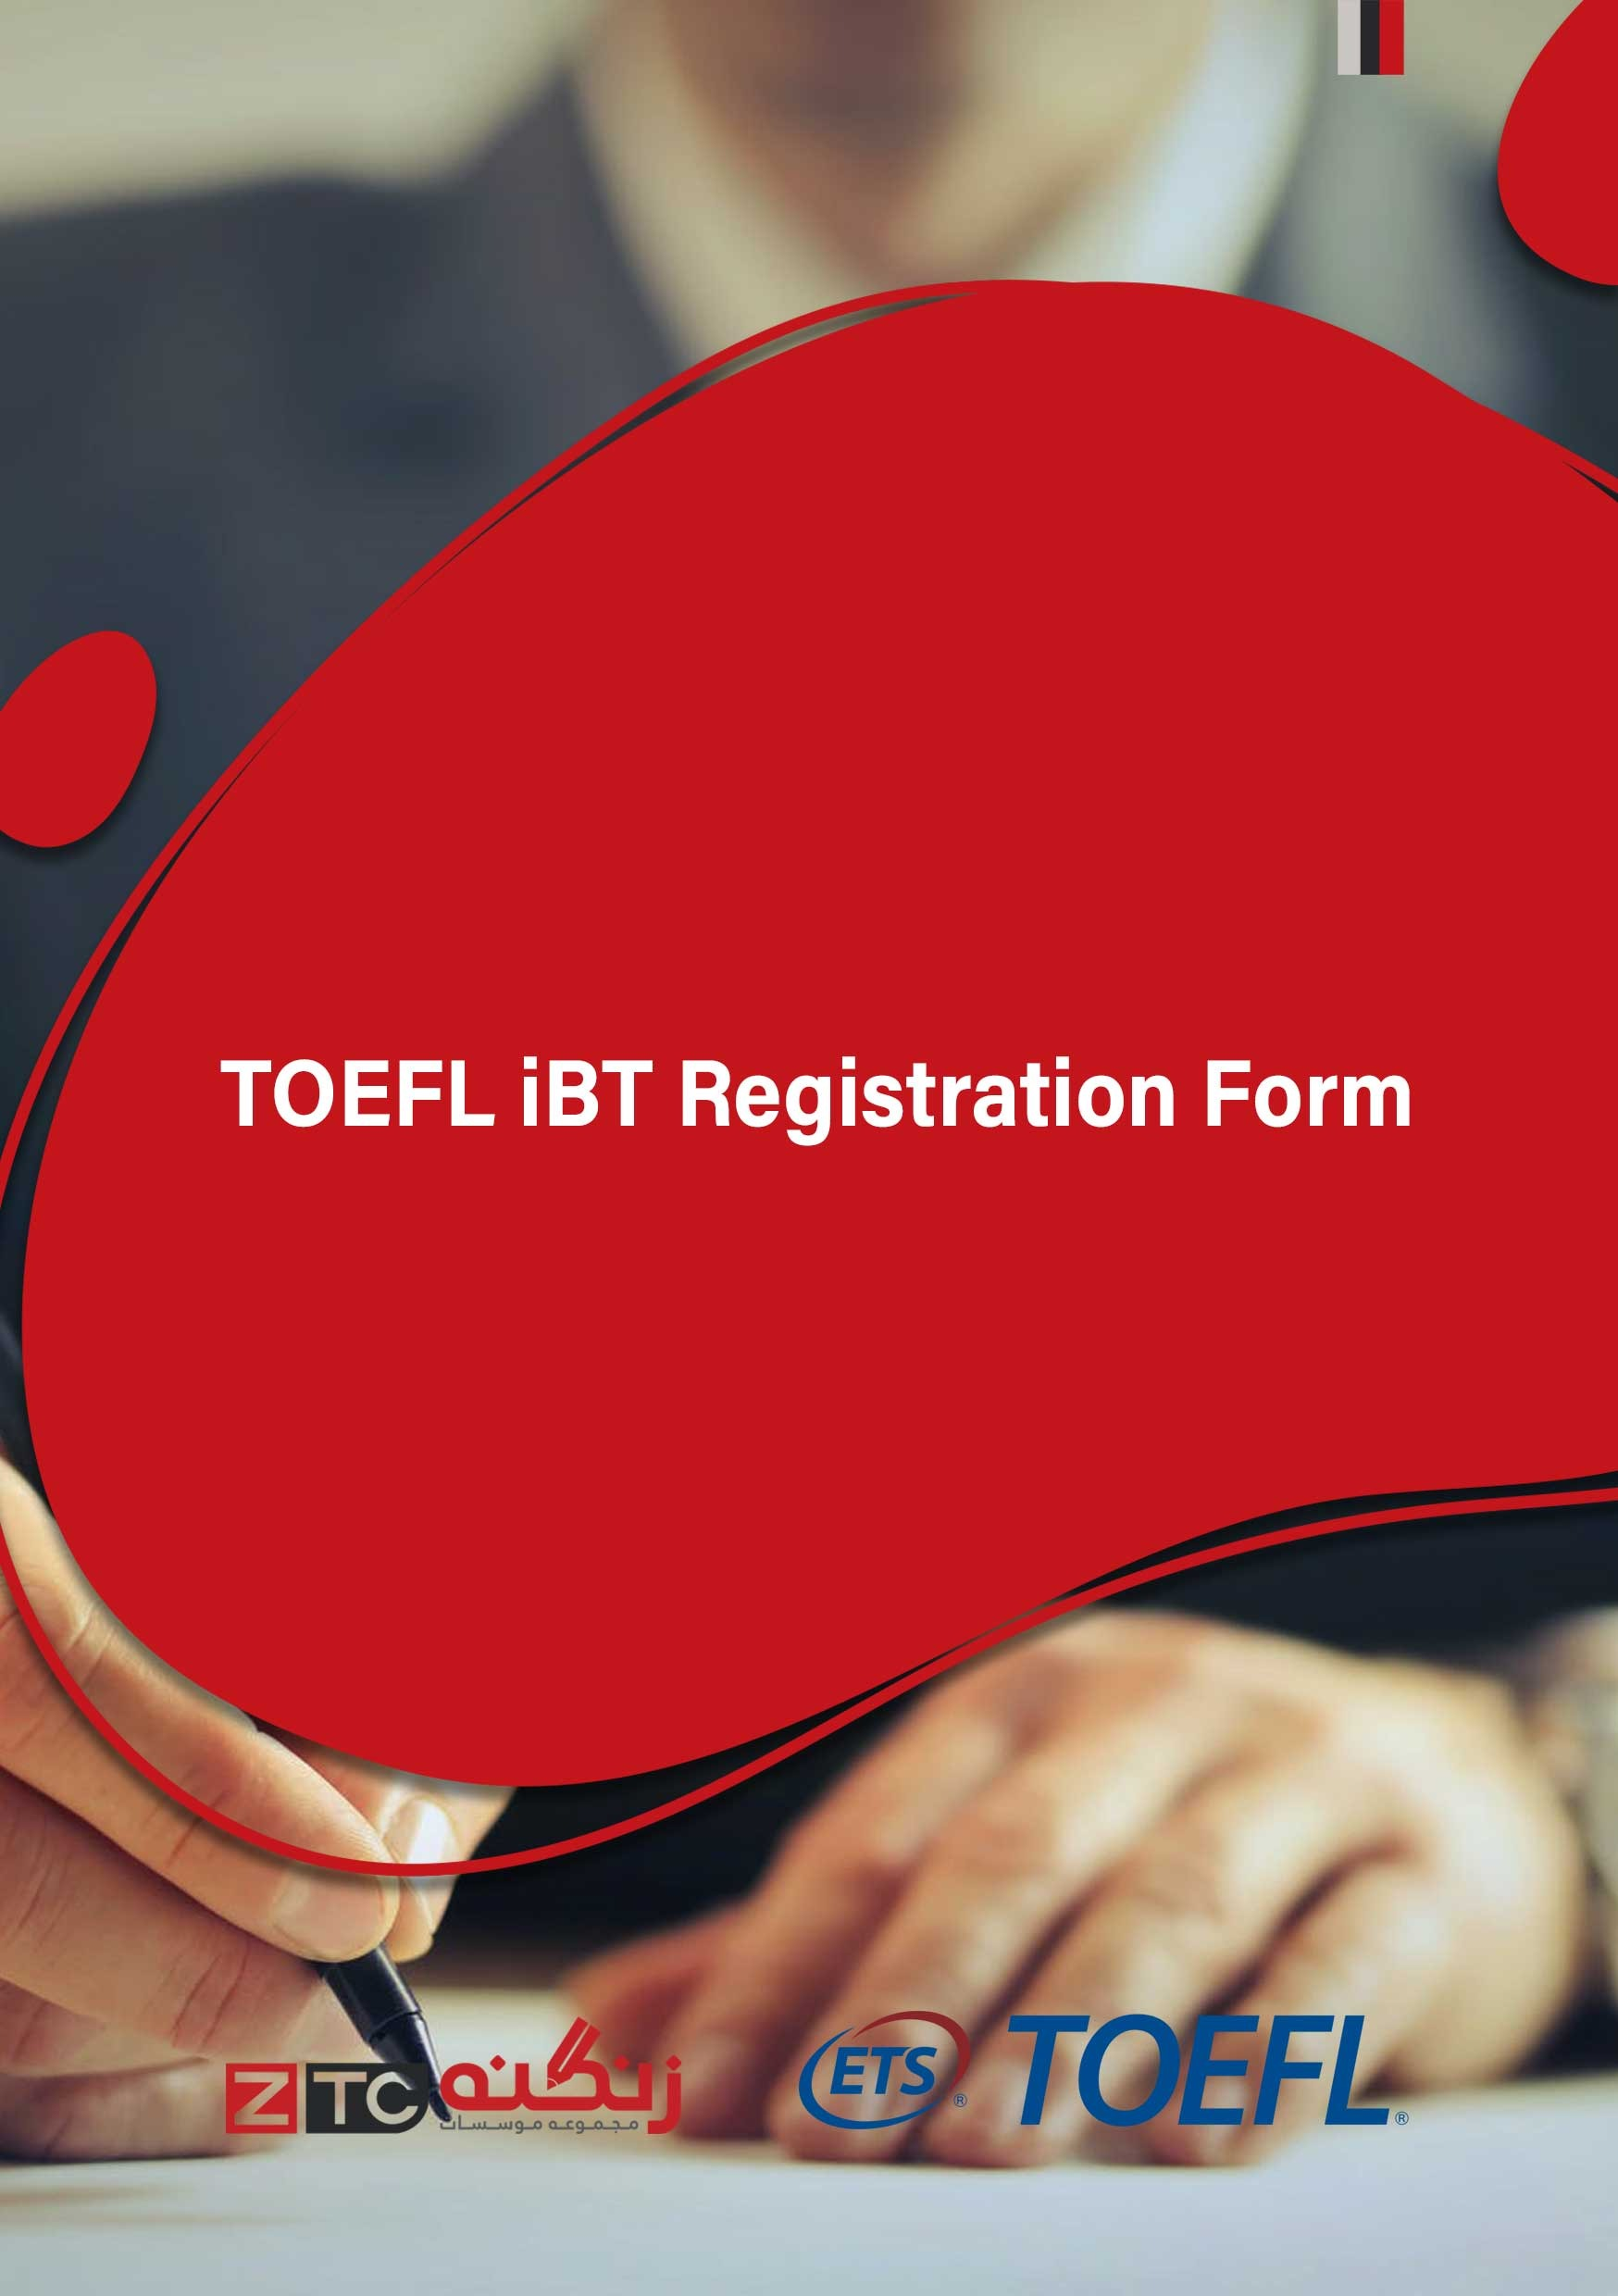 TOEFL iBT Registration Form